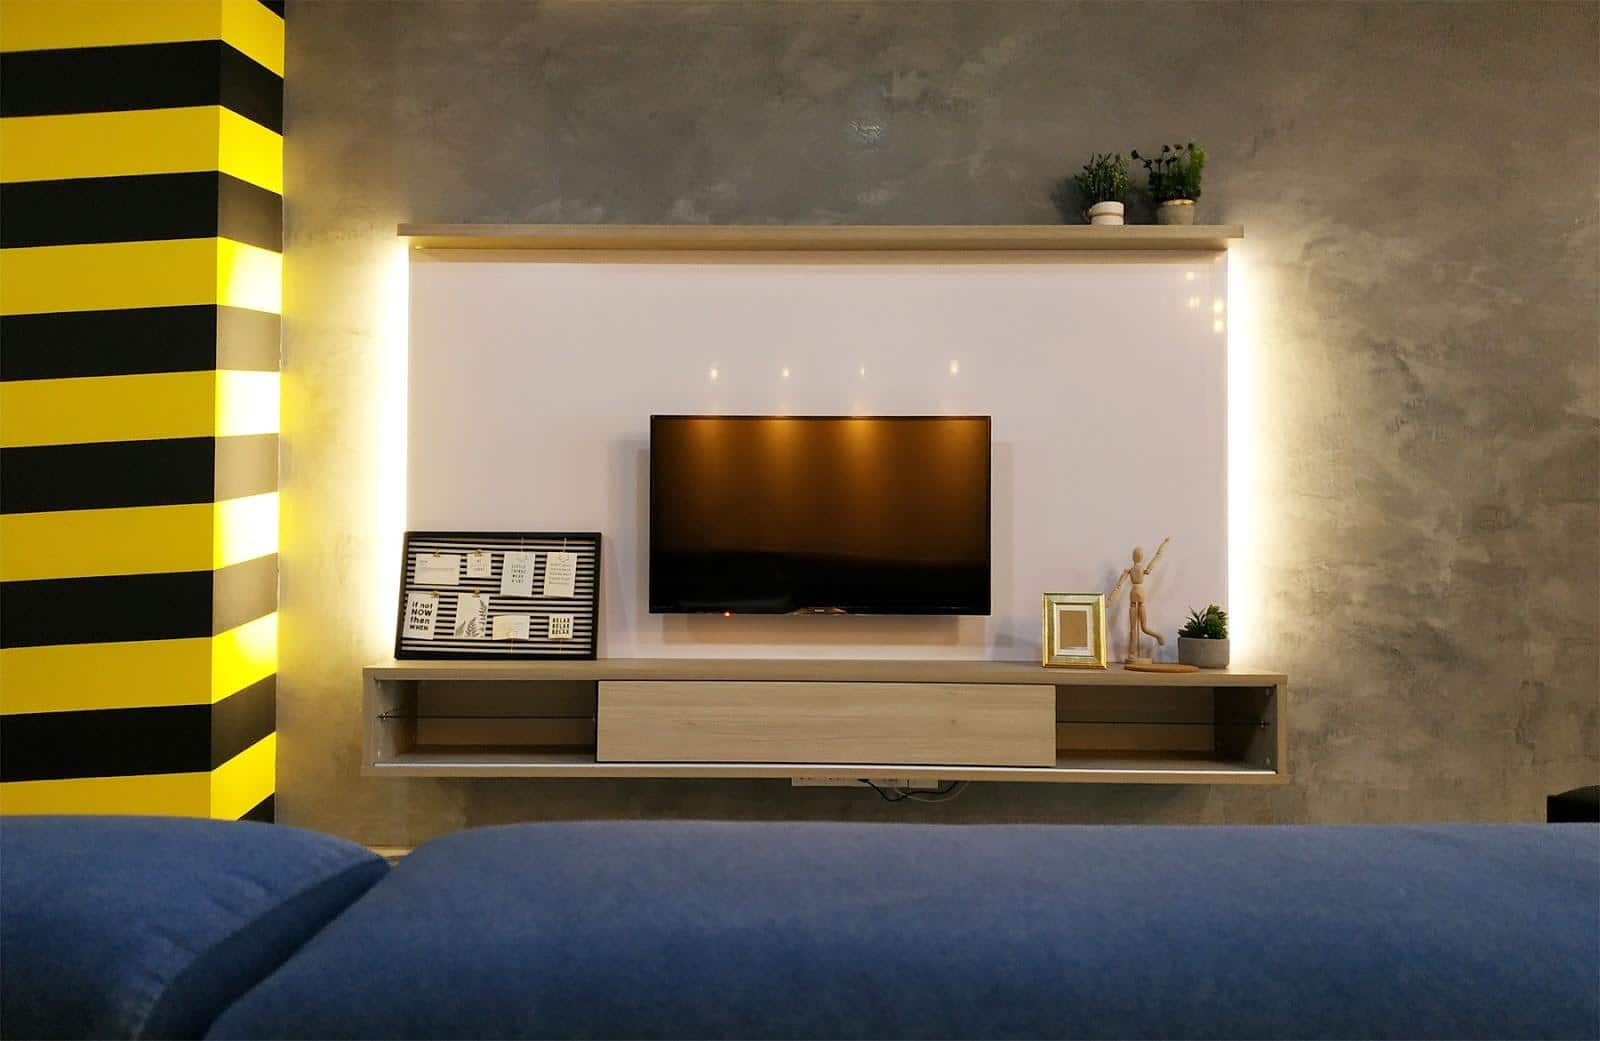 Bumblebee feature wall pillar and Scandinavian TV console with concealed lighting in The Salve Airbnb, 3 Towers, Jalan Ampang